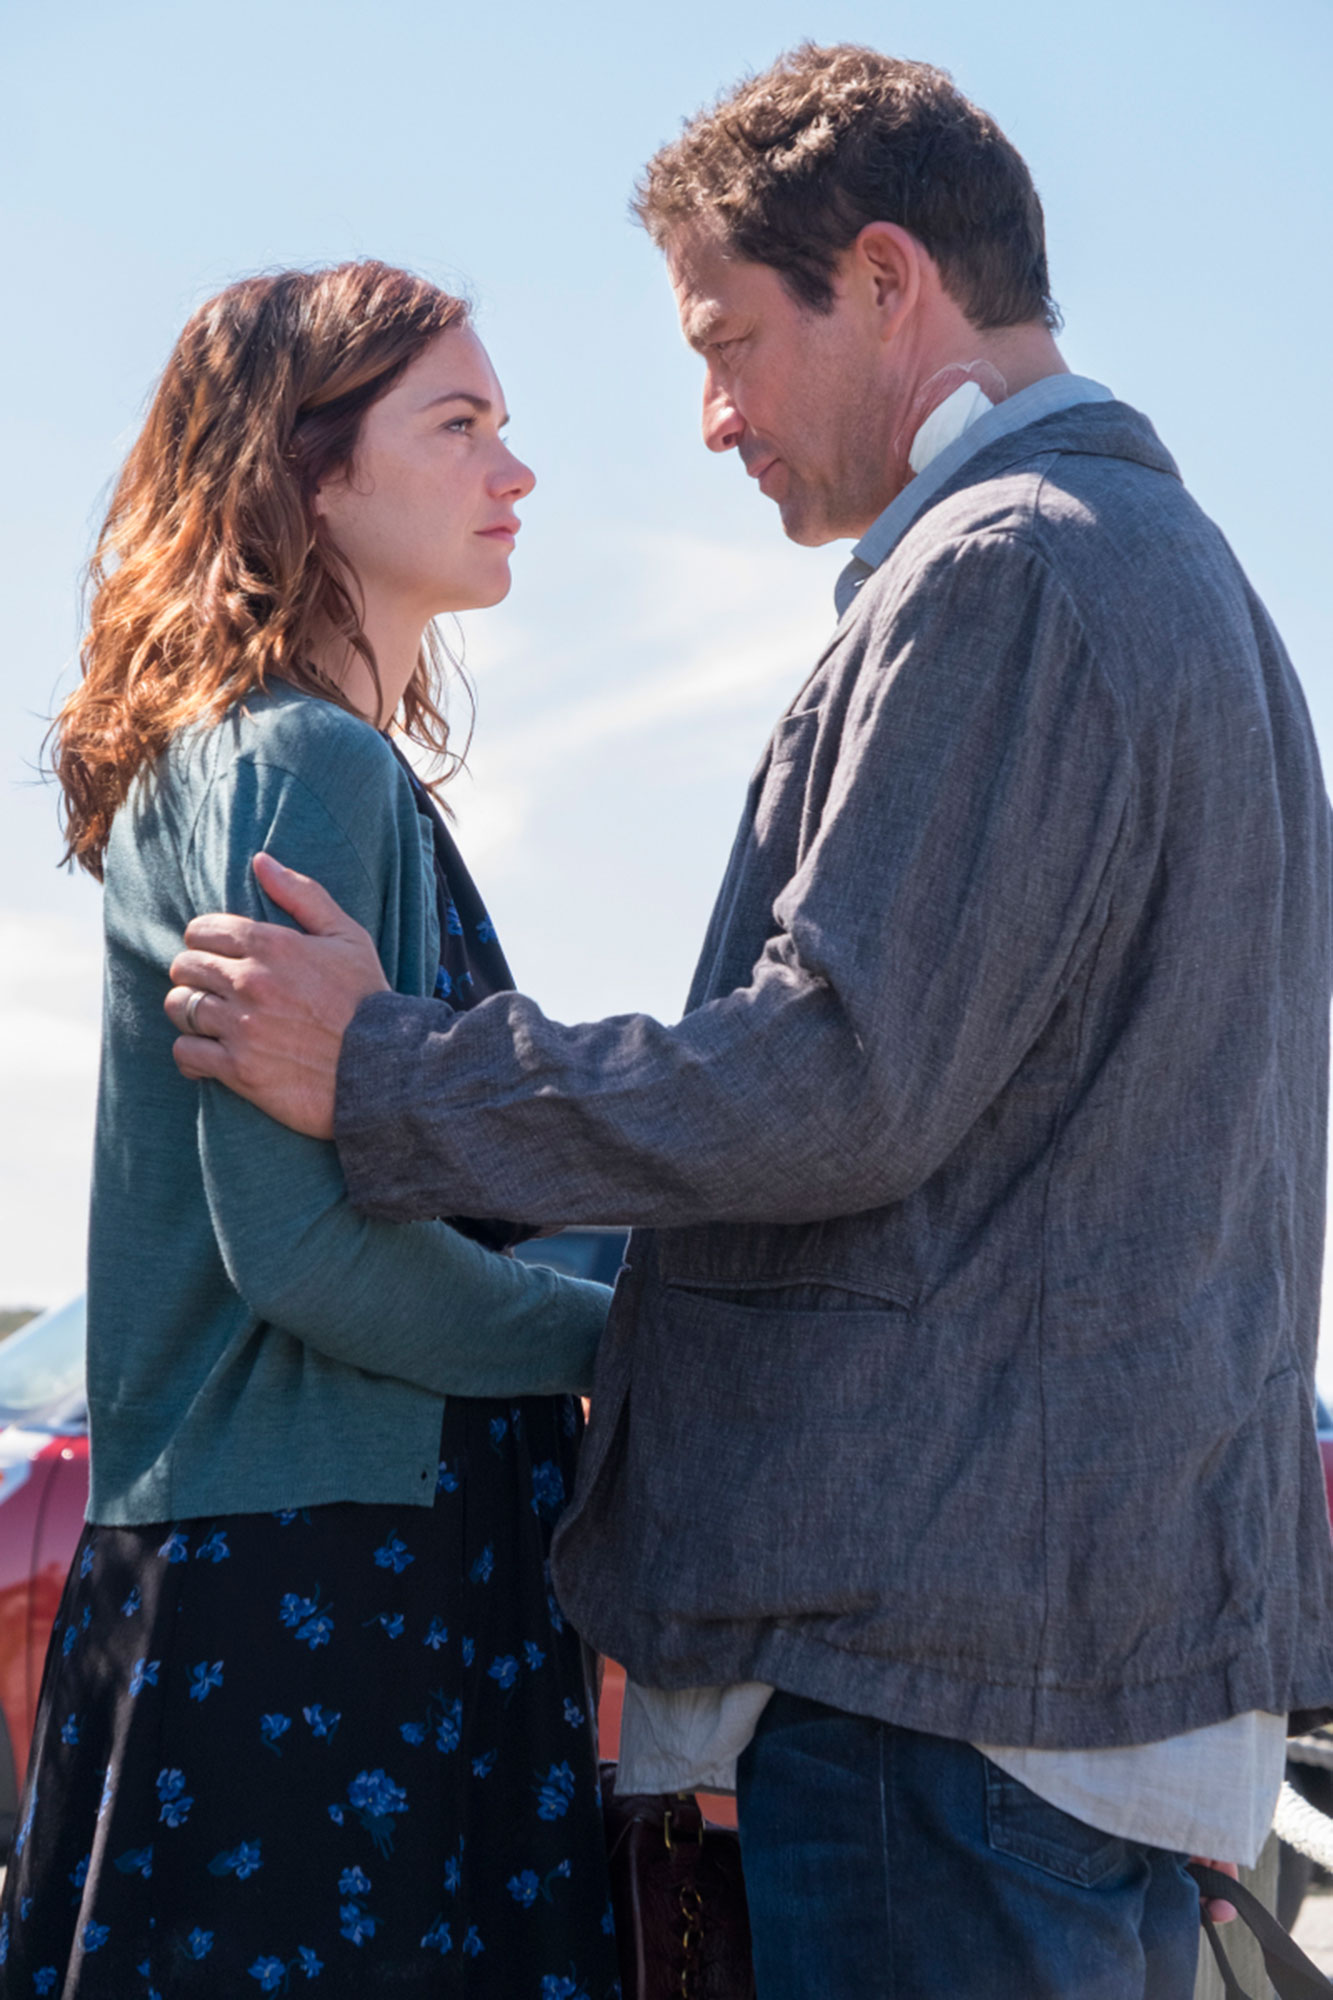 Ruth Wilson Dominic West - Ruth Wilson as Alison and Dominic West as Noah Solloway in The Affair (season 3, episode 5).